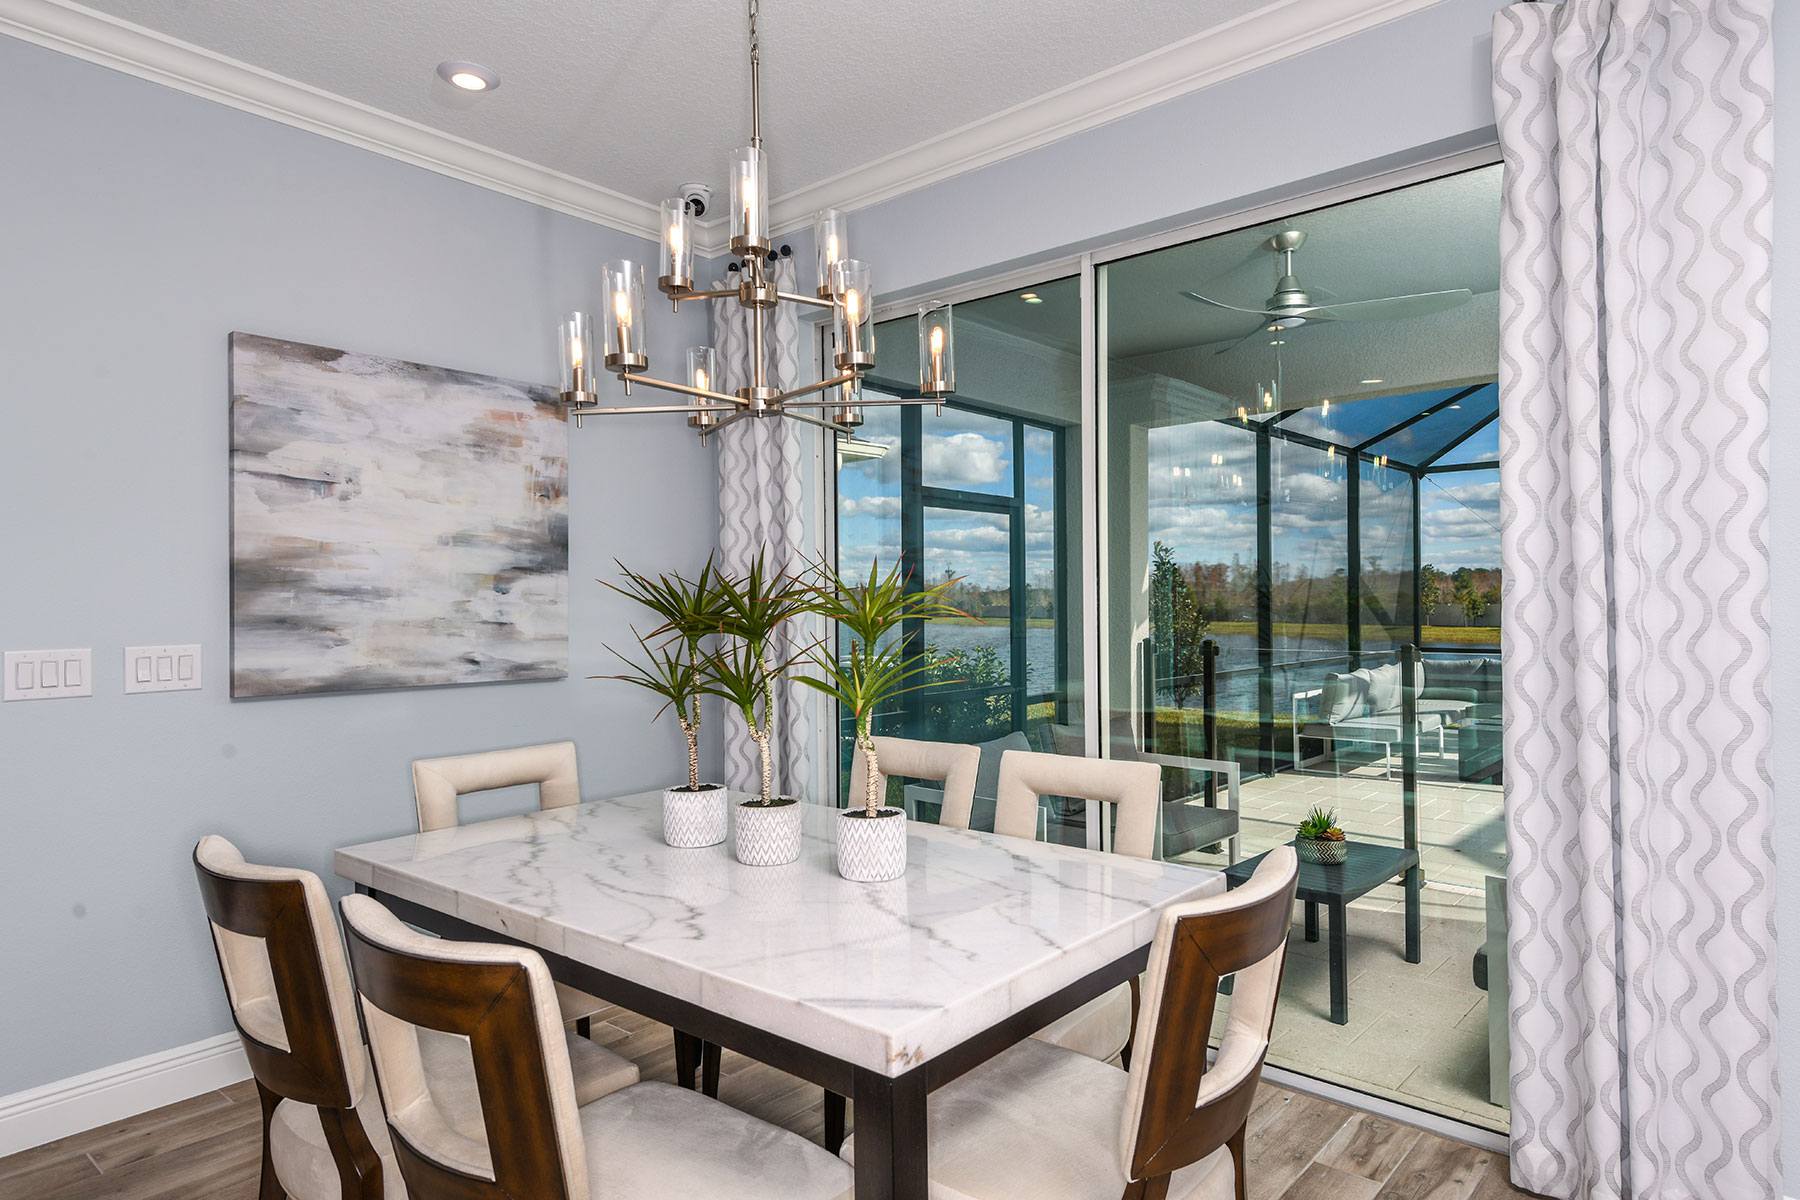 Myrtle Plan Dining at Parkview at Long Lake Ranch in Lutz Florida by Mattamy Homes